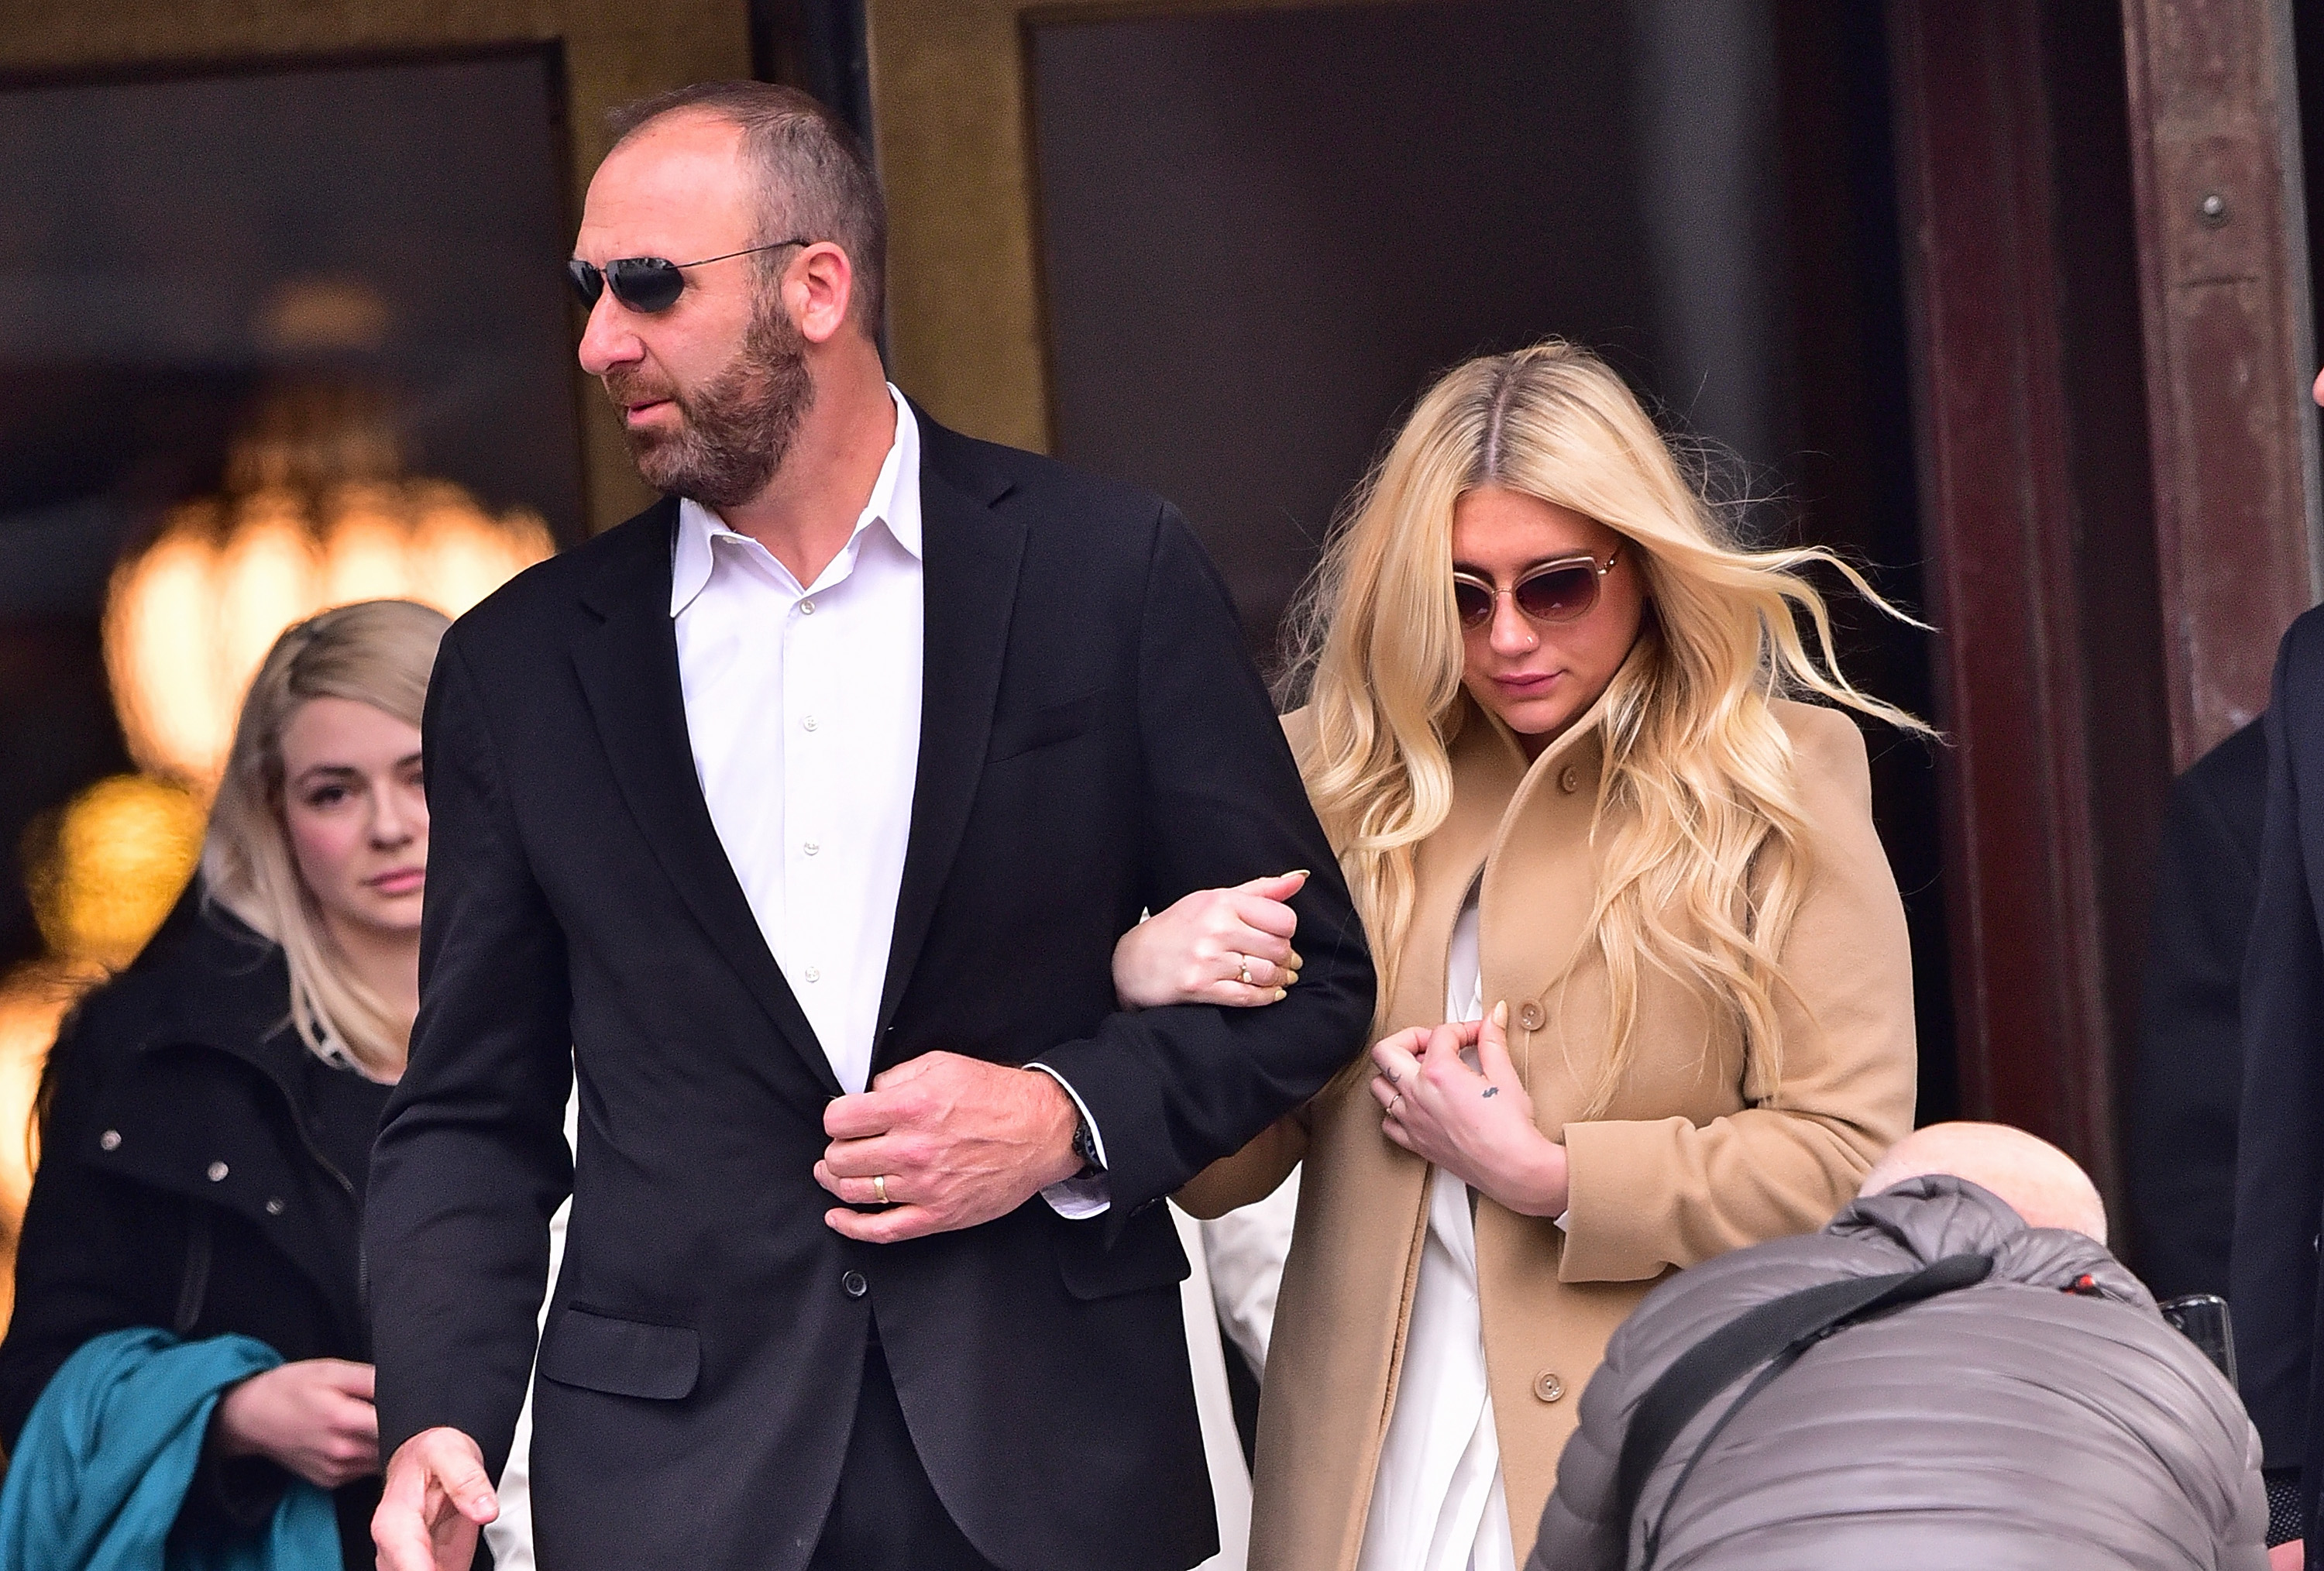 Kesha leaves the New York State Supreme Court on February 19, 2016 in New York City.